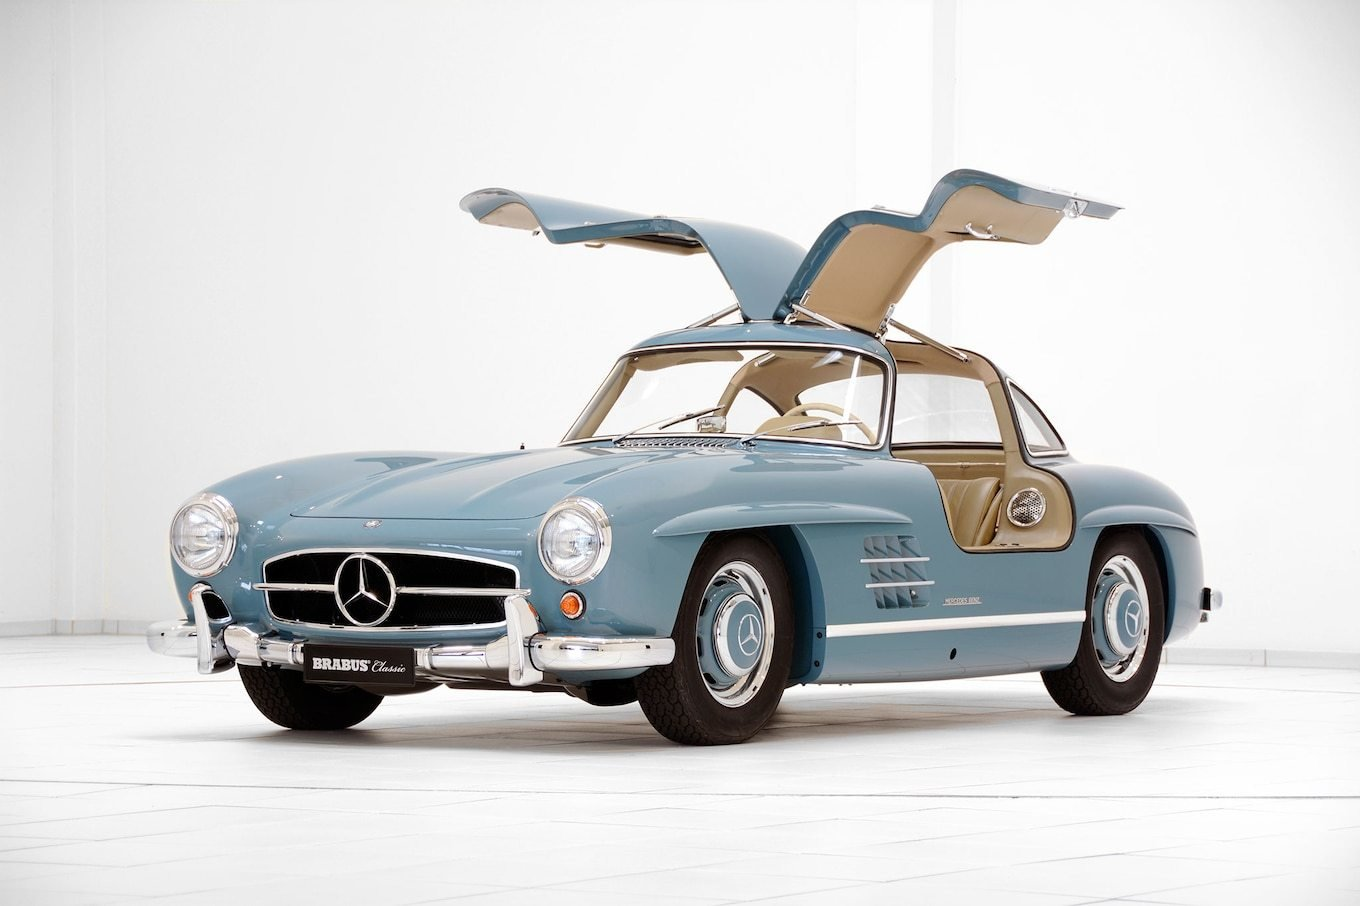 Latest Brabus Promotes Classic Services With Restored Mercedes Free Download Original 1024 x 768